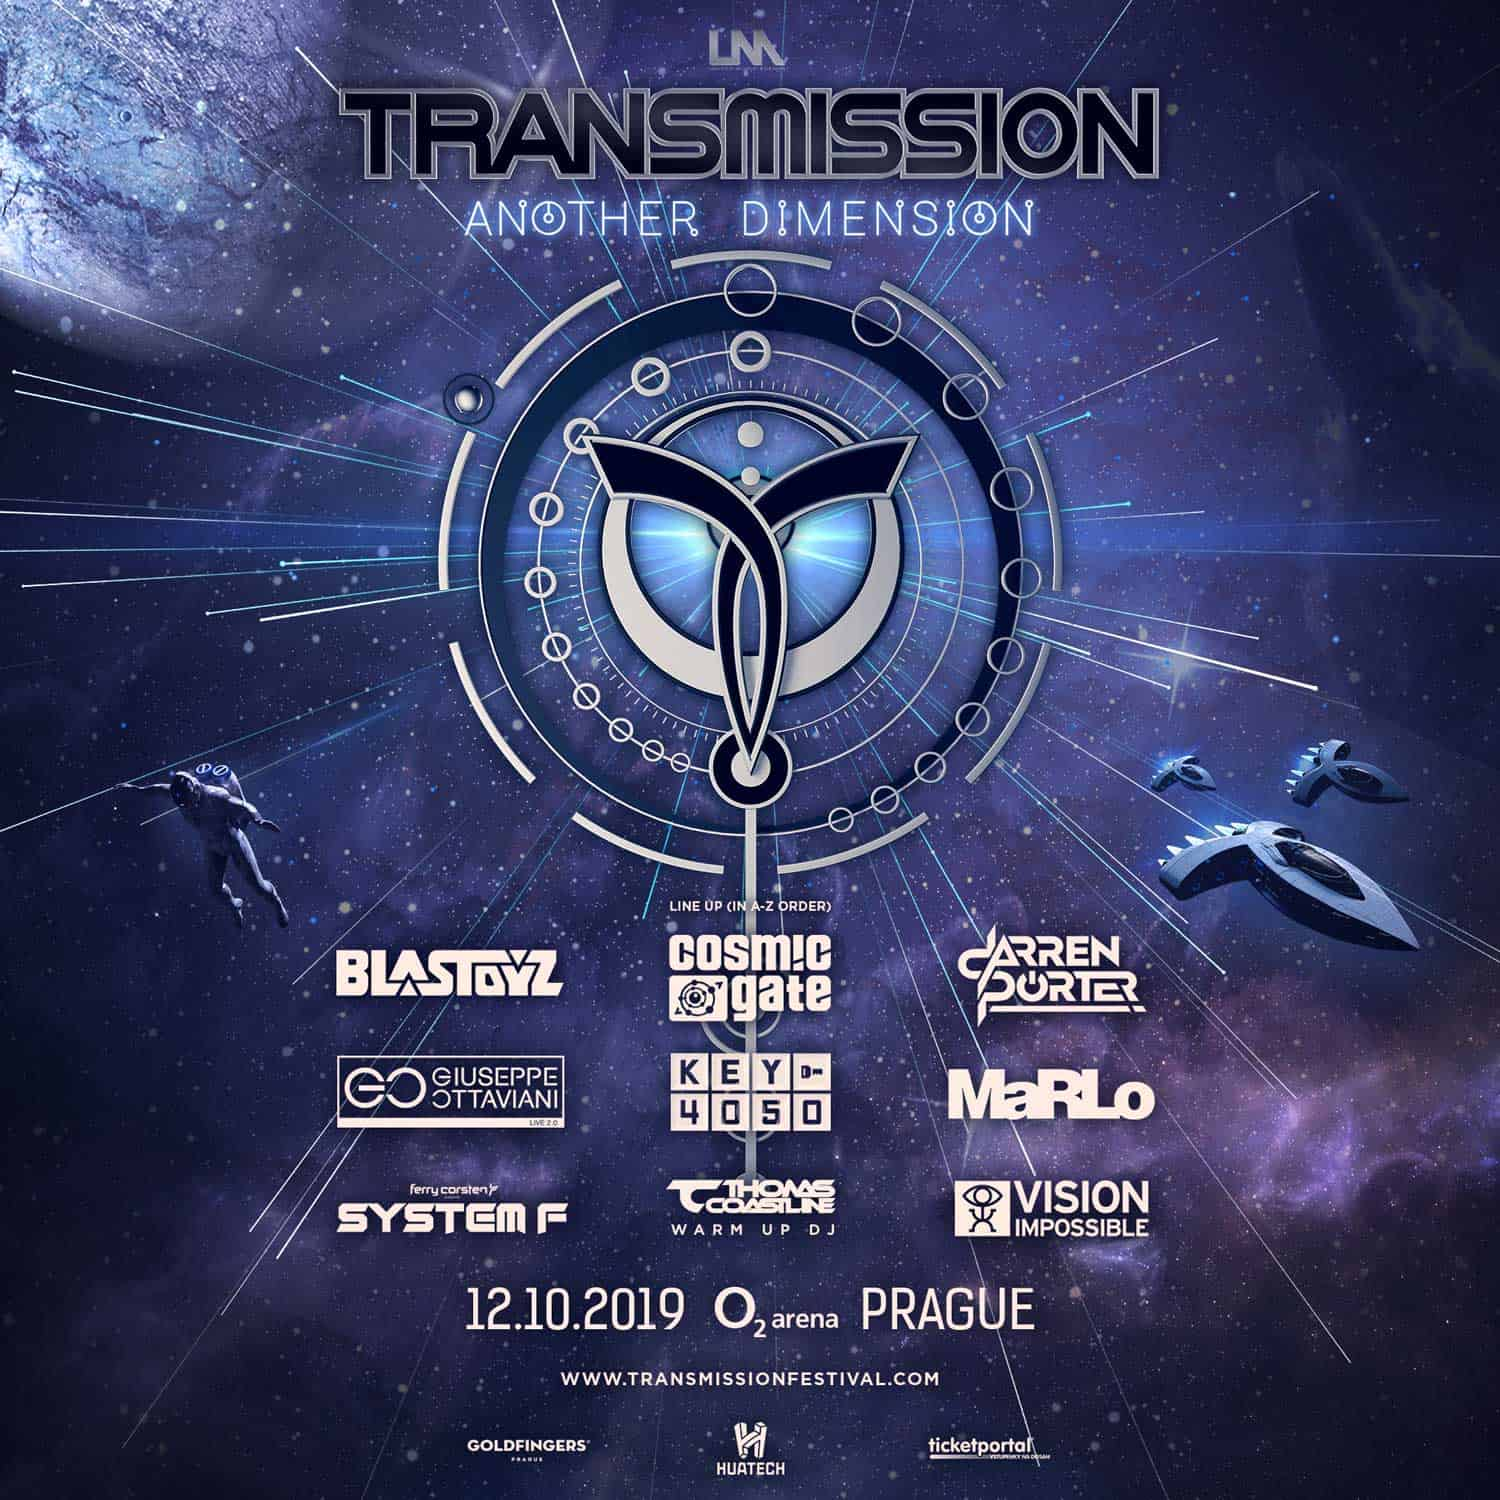 Transmission 2019 In Prague Will Take You Into Another Dimension